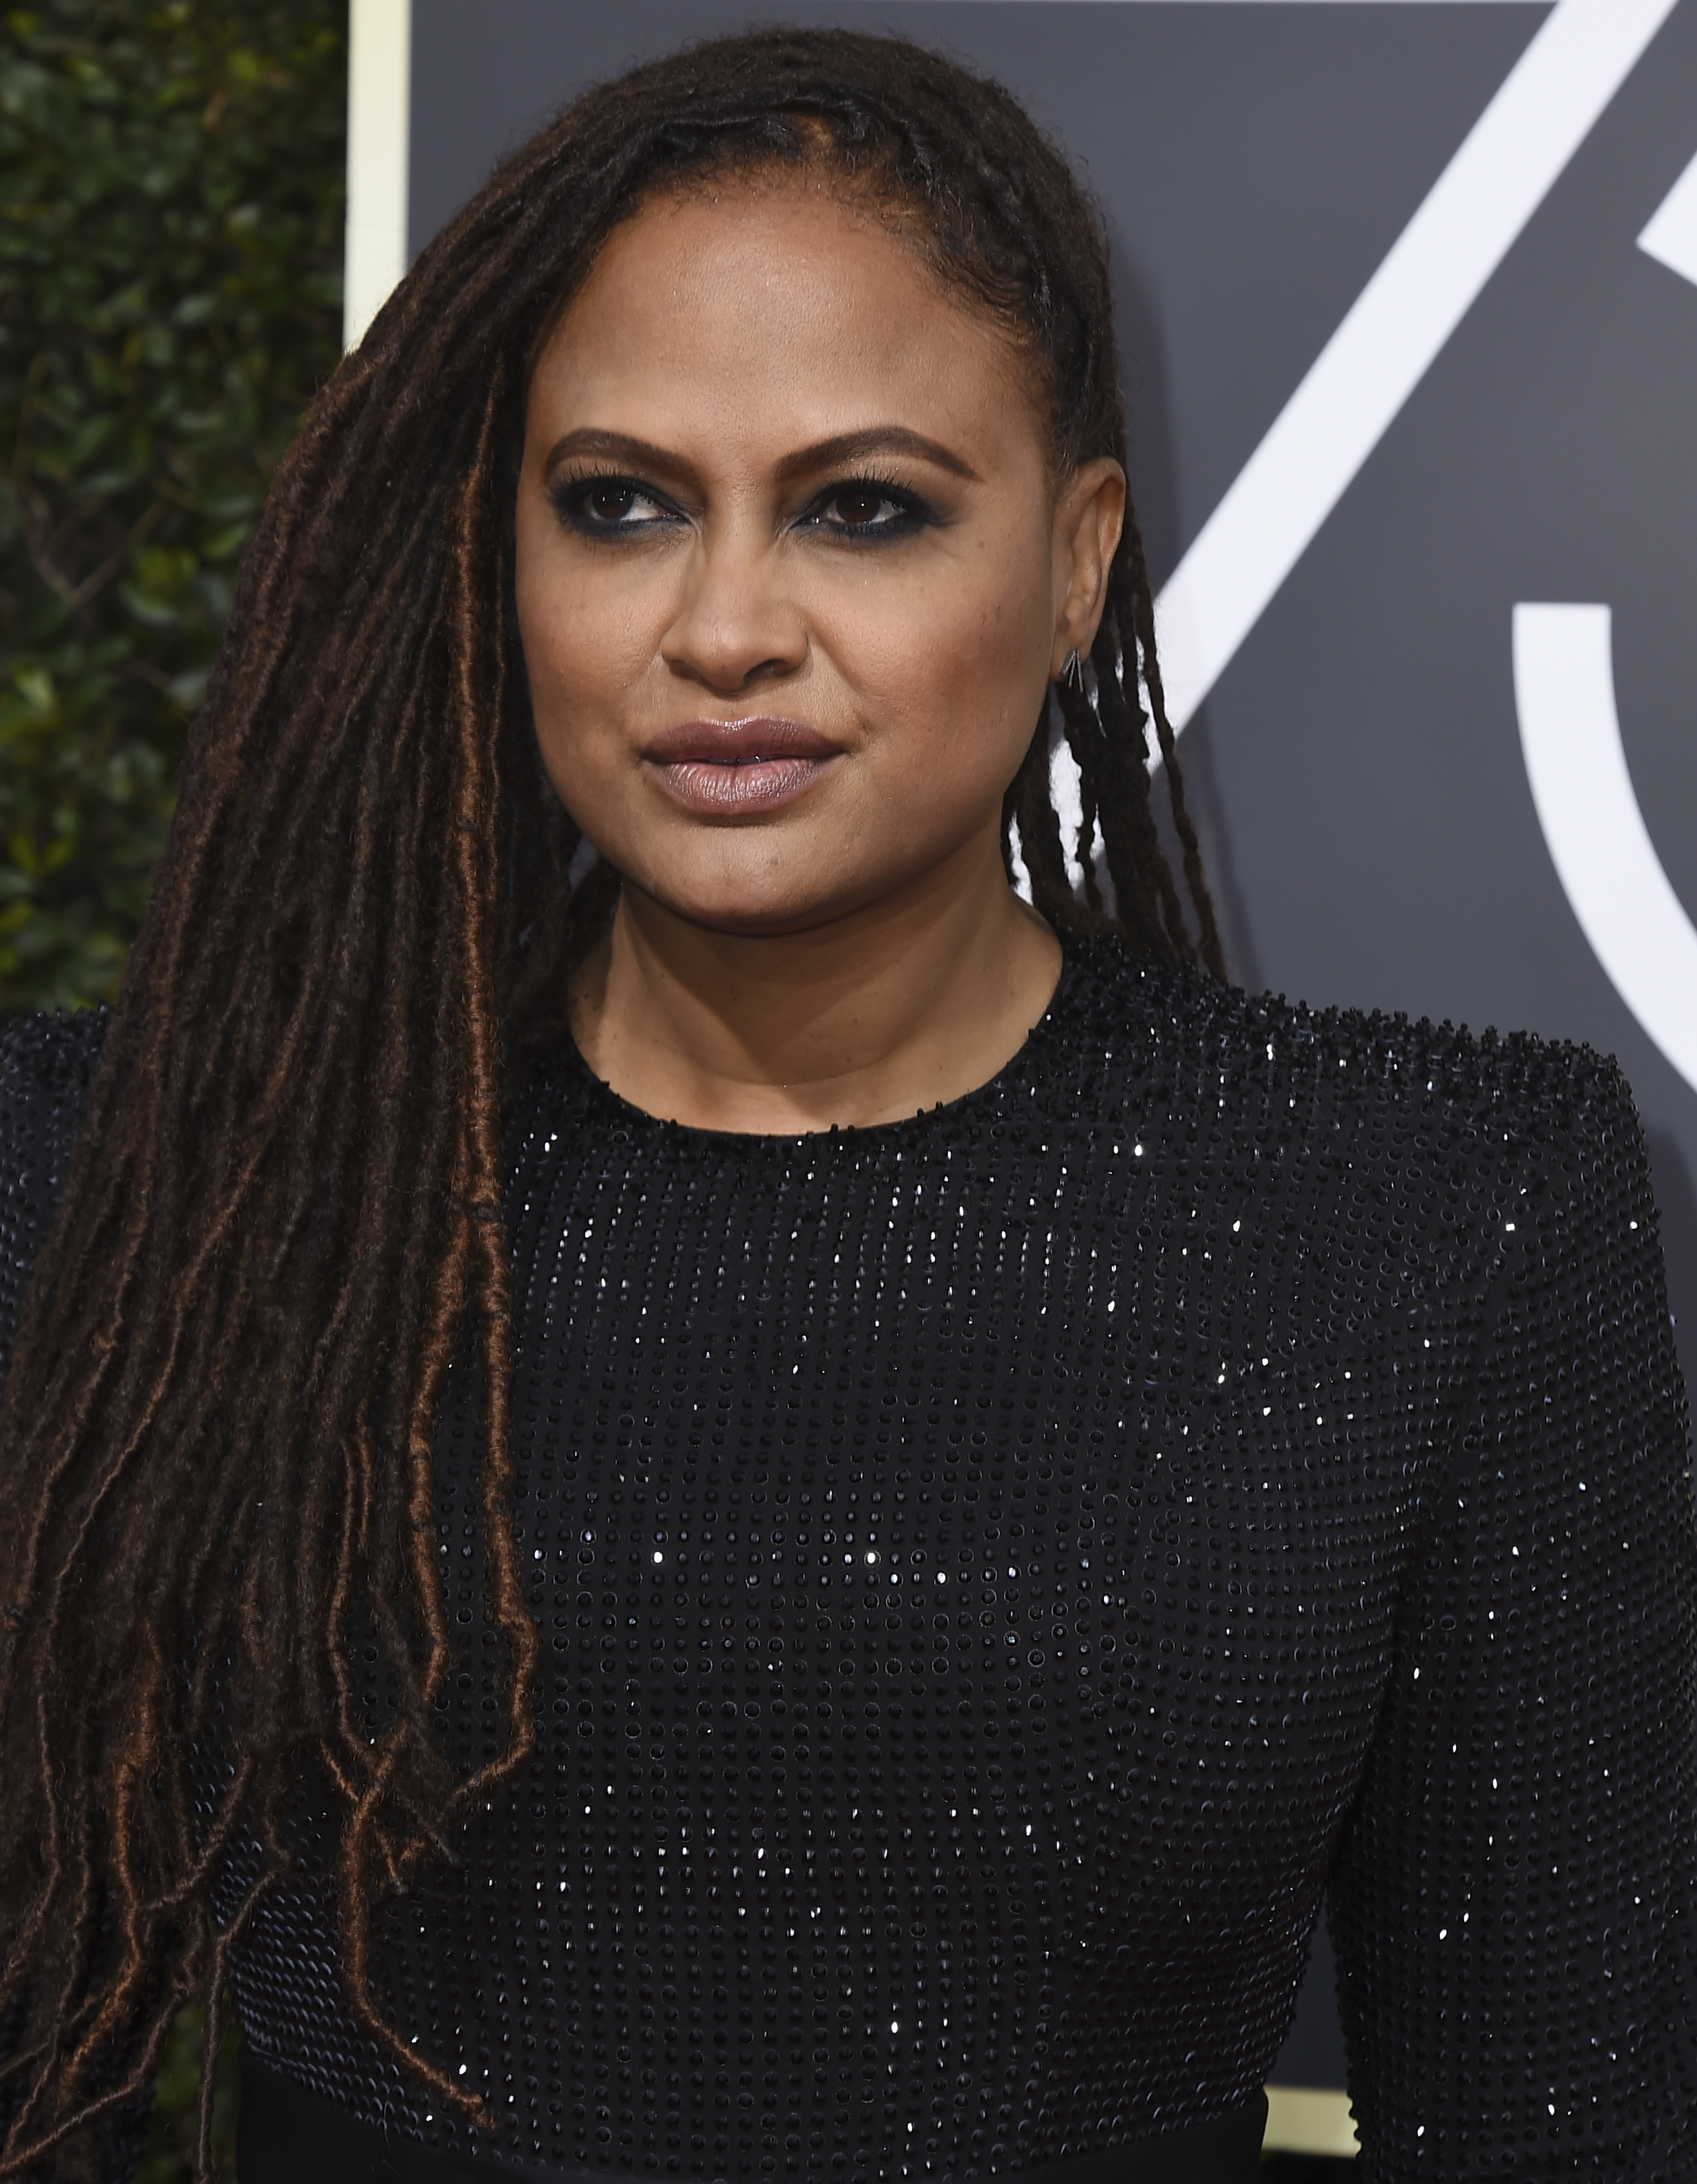 <div class='meta'><div class='origin-logo' data-origin='AP'></div><span class='caption-text' data-credit='Jordan Strauss/Invision/AP'>Ava DuVernay arrives at the 75th annual Golden Globe Awards at the Beverly Hilton Hotel on Sunday, Jan. 7, 2018, in Beverly Hills, Calif.</span></div>